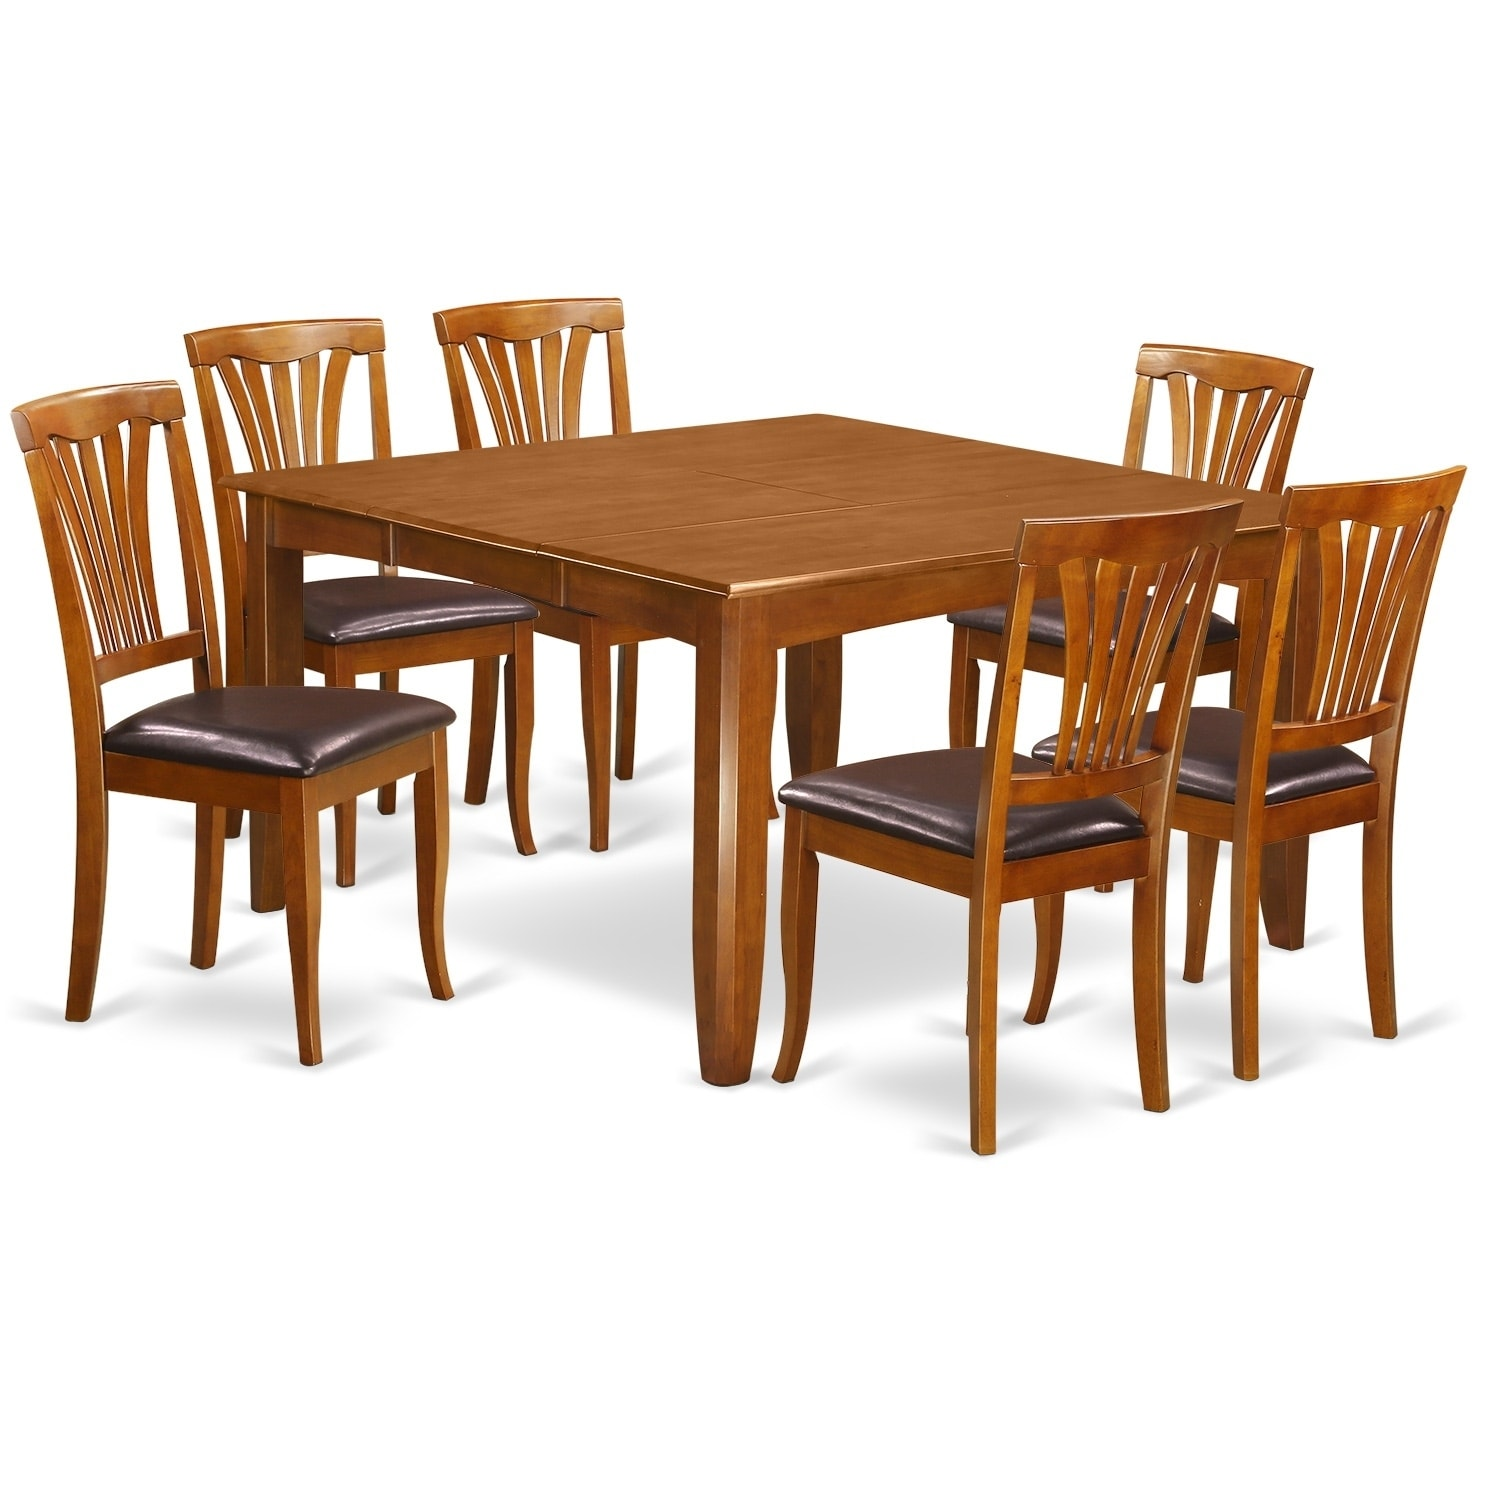 PFAV7-SBR 7 PC Dining set-Dinette Table with Leaf and 6 C...